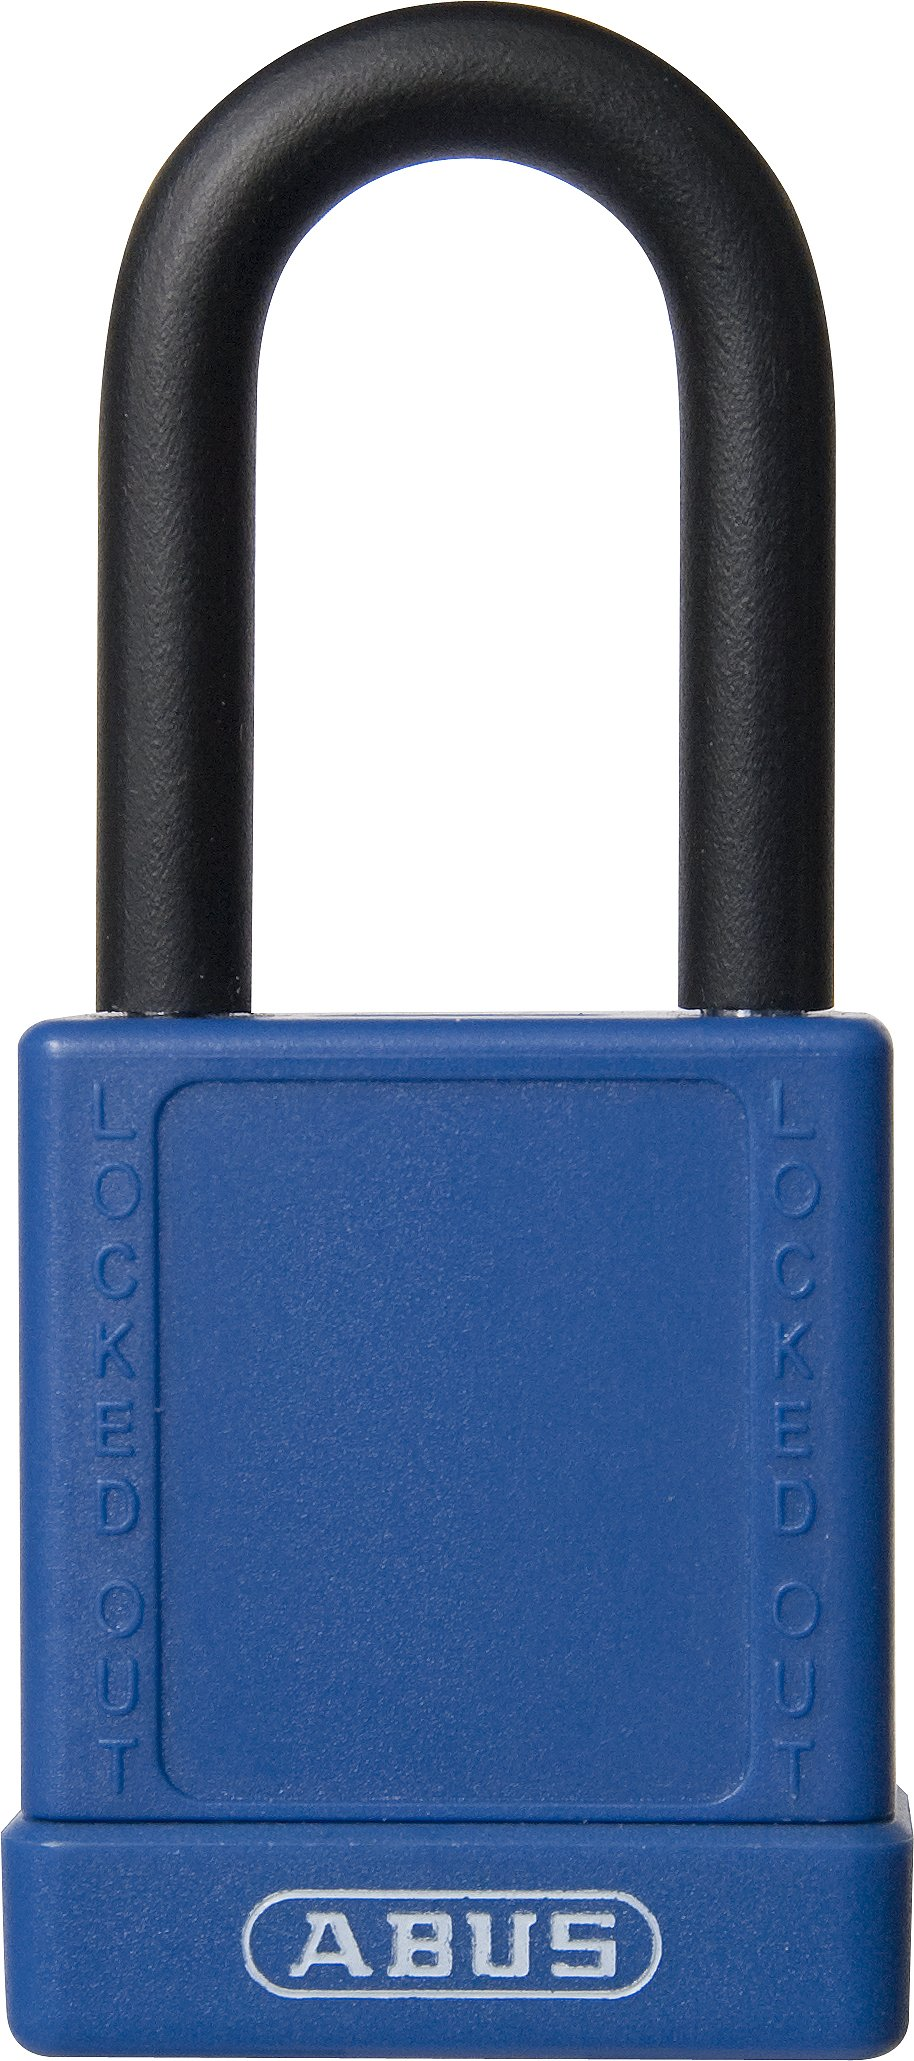 ABUS 74/40 KD Safety Lockout Non-Conductive Keyed Different Padlock with 1-1/2-Inch Shackle, Blue